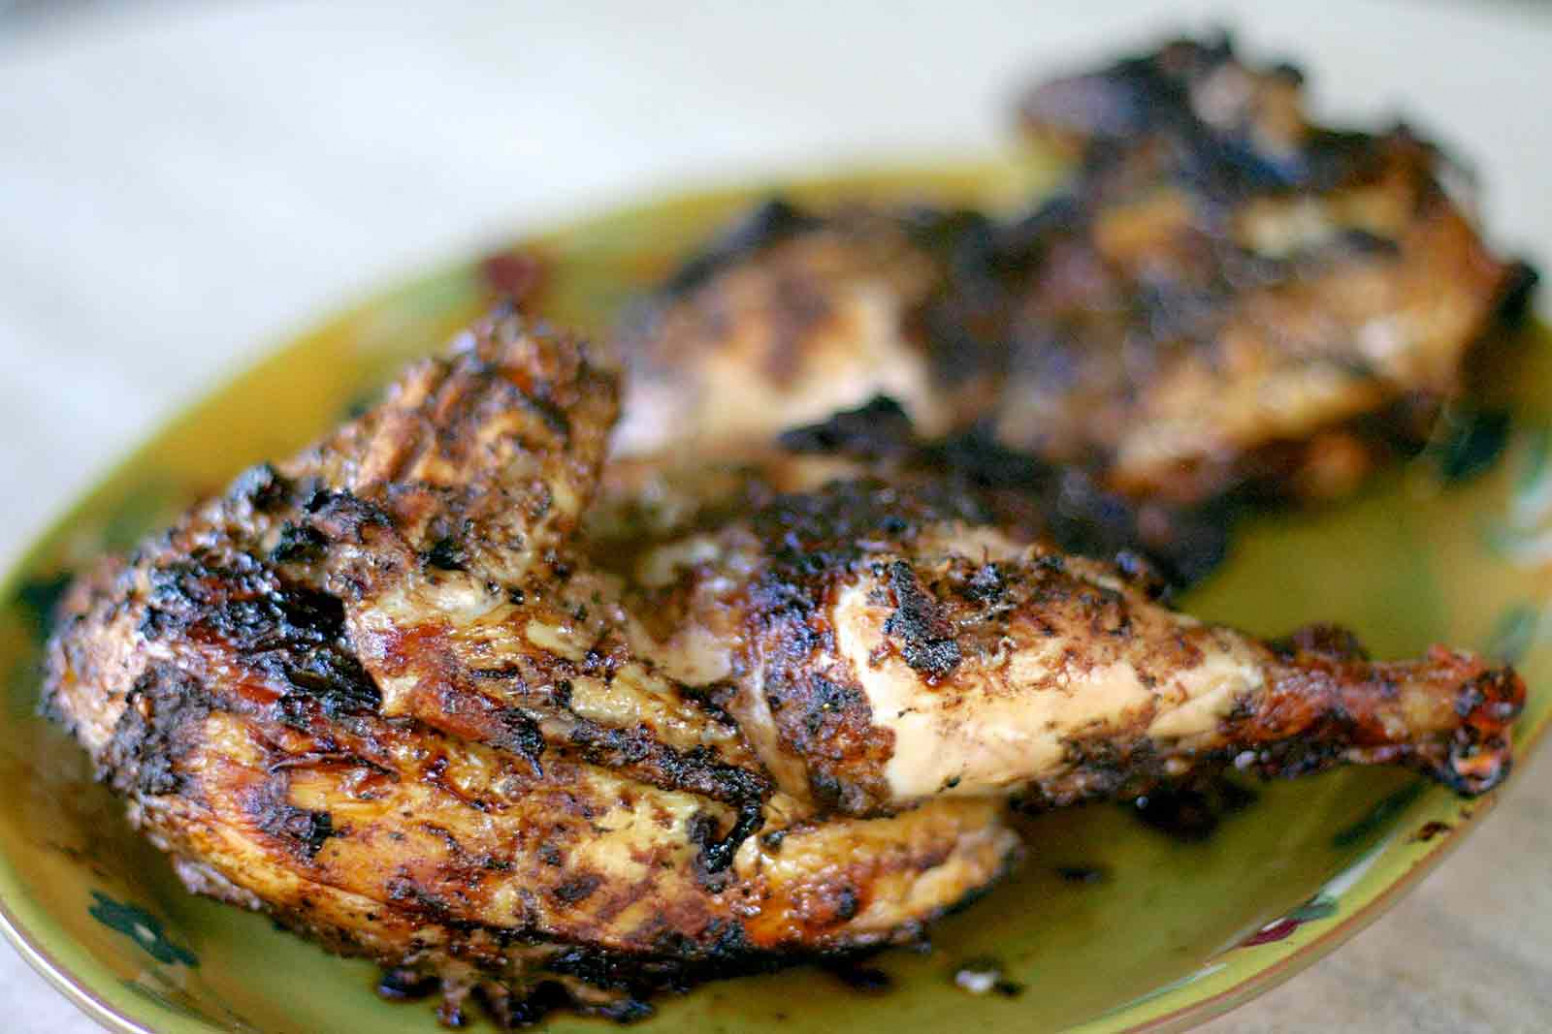 Jerk Chicken Recipe Baked or Grilled! | SimplyRecipes.com